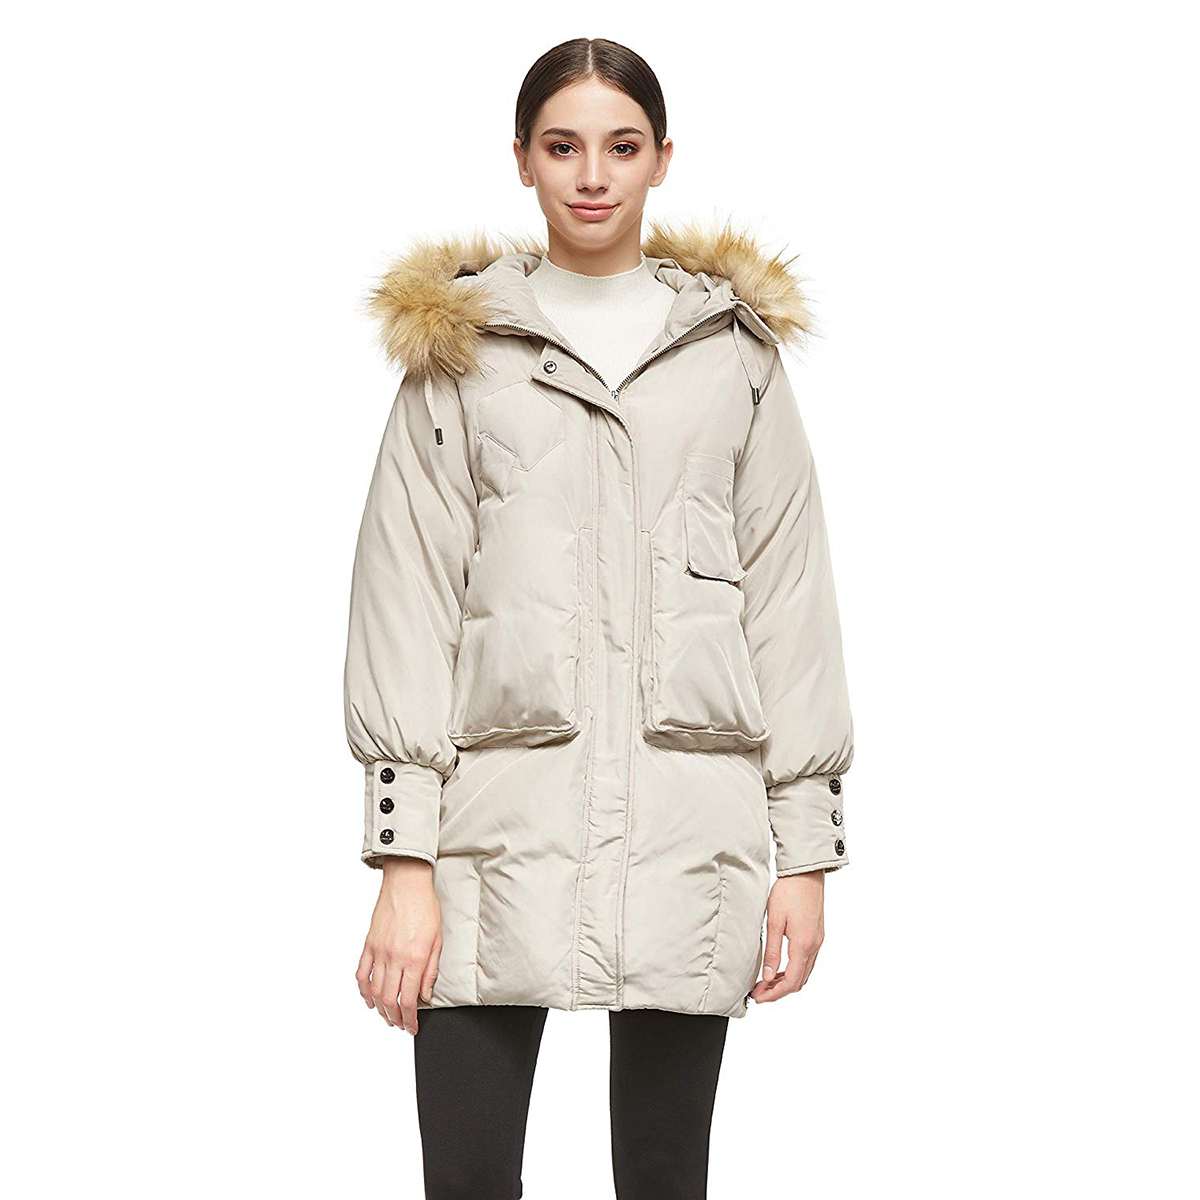 Orolay Women's Cuff Sleeve Down Jacket